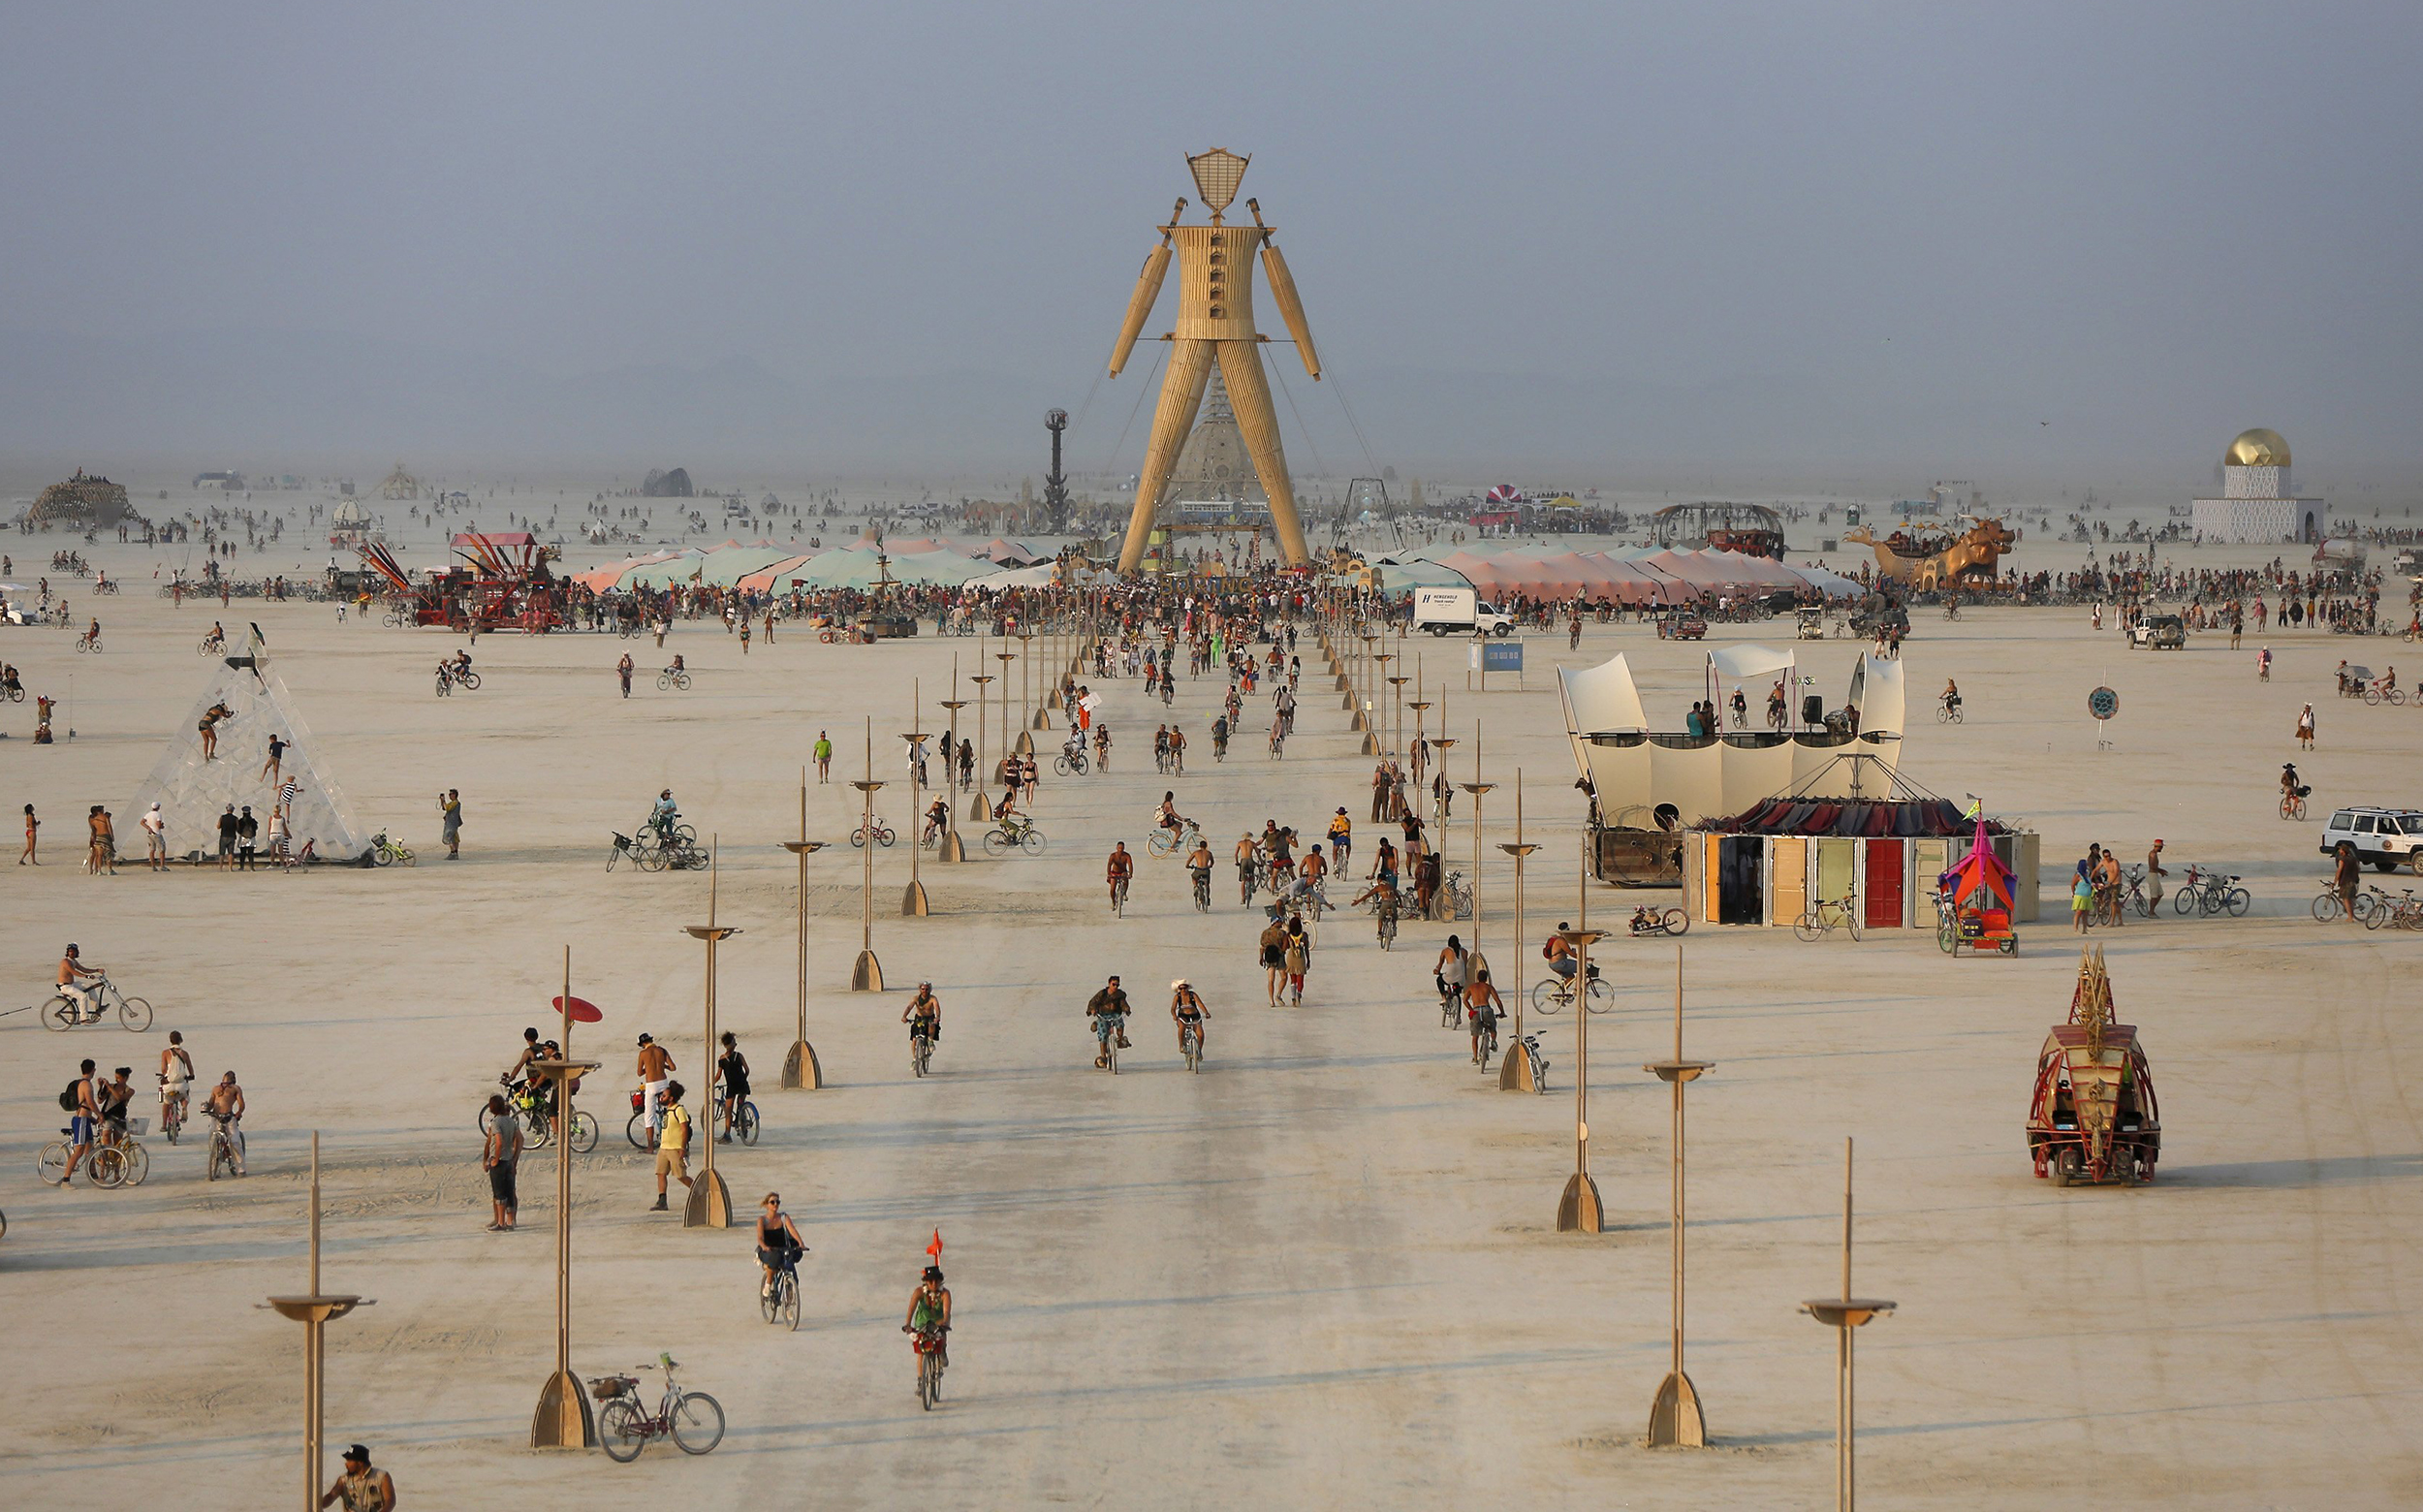 The Effigy at the 2014 Burning Man Photo: nbc